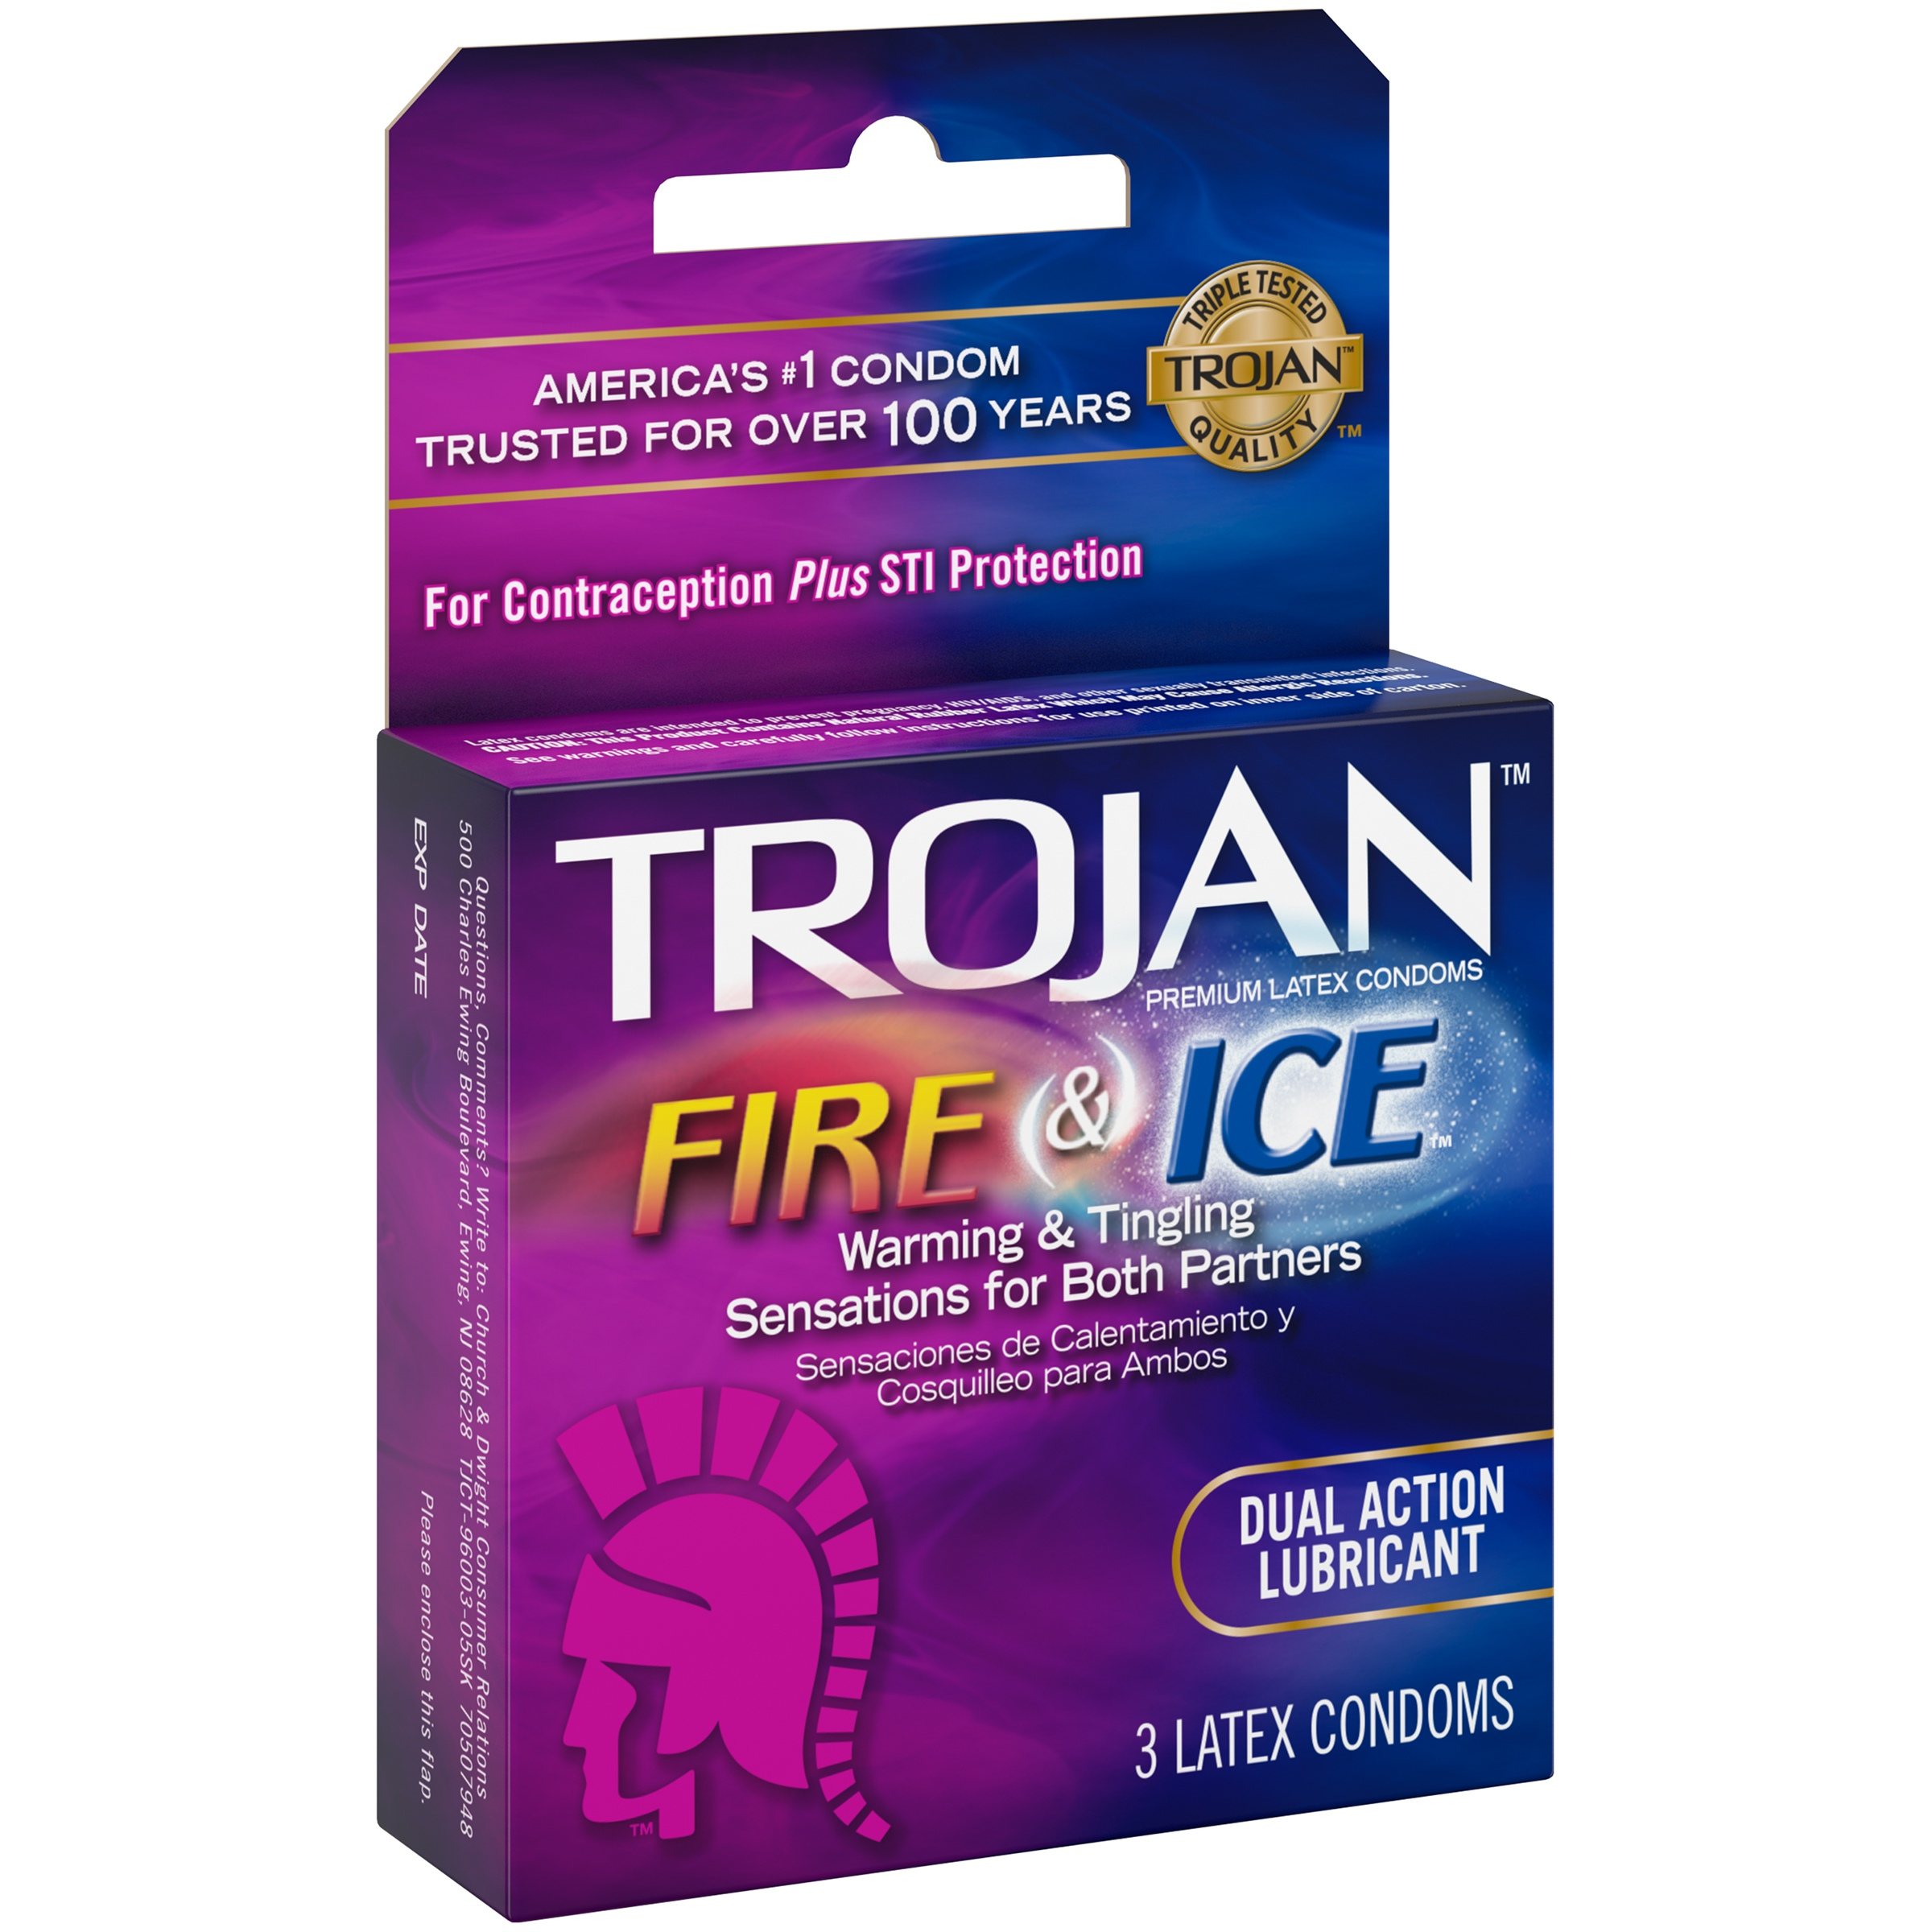 Trojan Fire and Ice Lubricated Latex Condoms - 3 ct